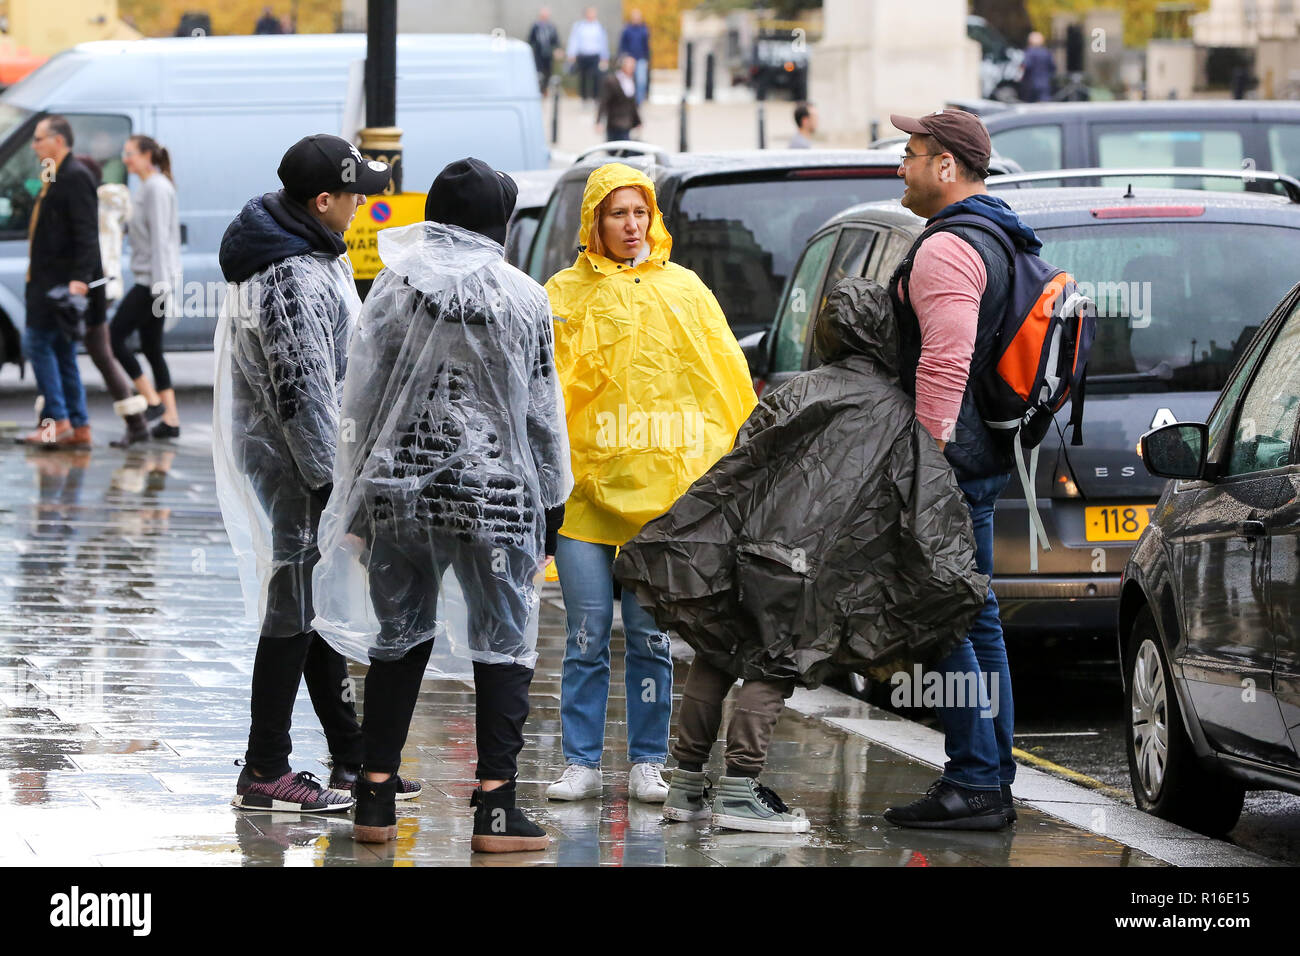 Westminster, London, UK 9 Nov 2018 - Tourists with ponchos on a wet but mild day in capital. According to The Met Office, windy with heavy rain is forecast for the evening in London.   Credit: Dinendra Haria/Alamy Live News - Stock Image